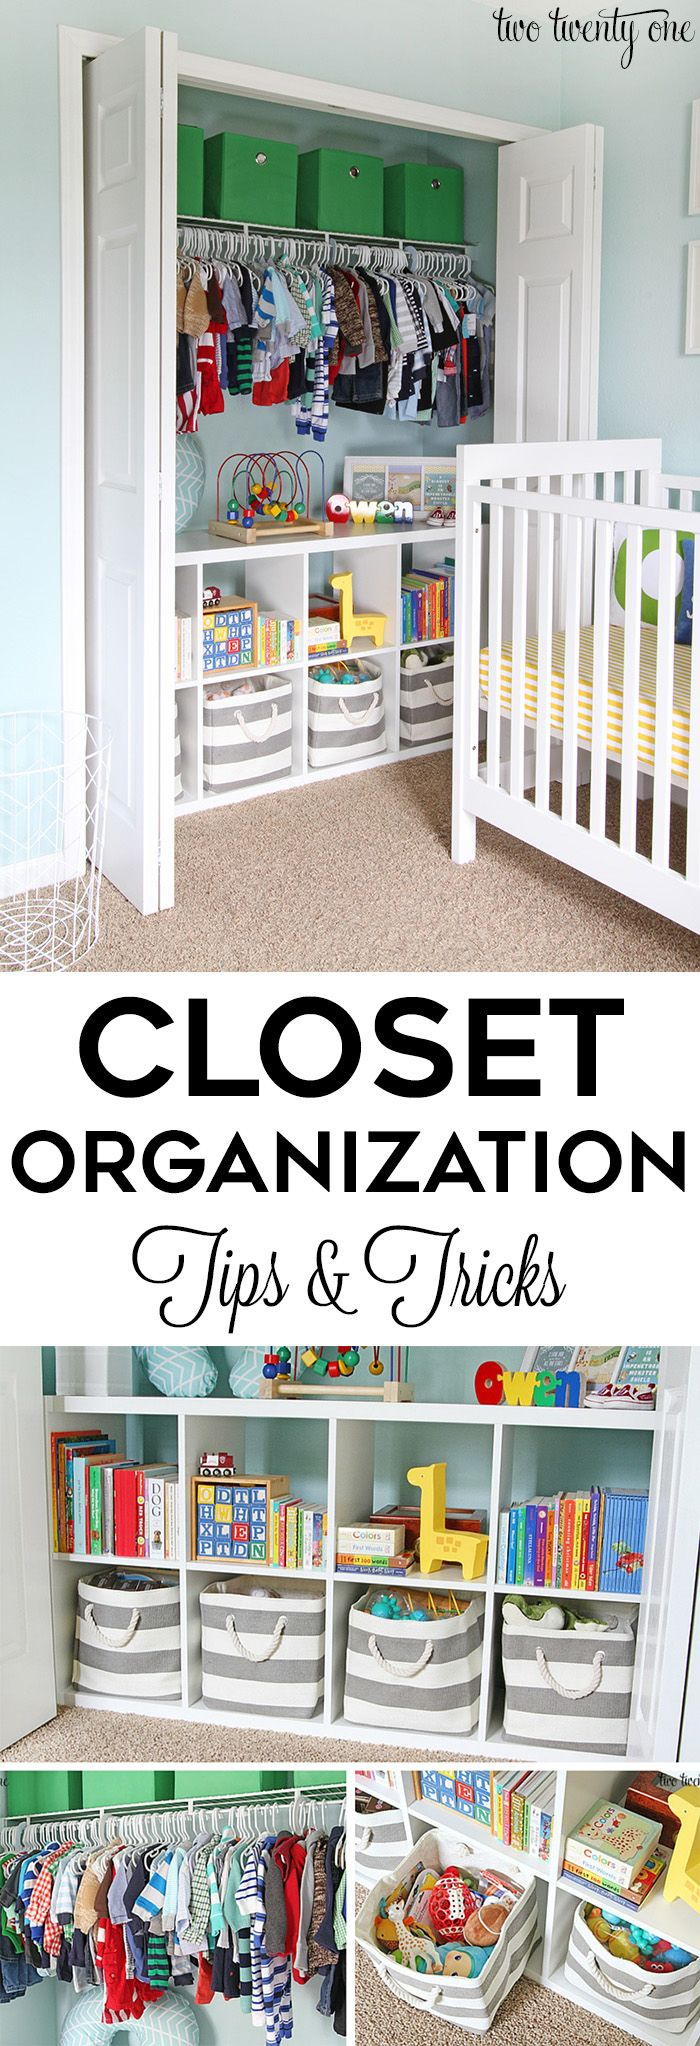 241.0+ best Declutter images on Pinterest | Organization ideas ...